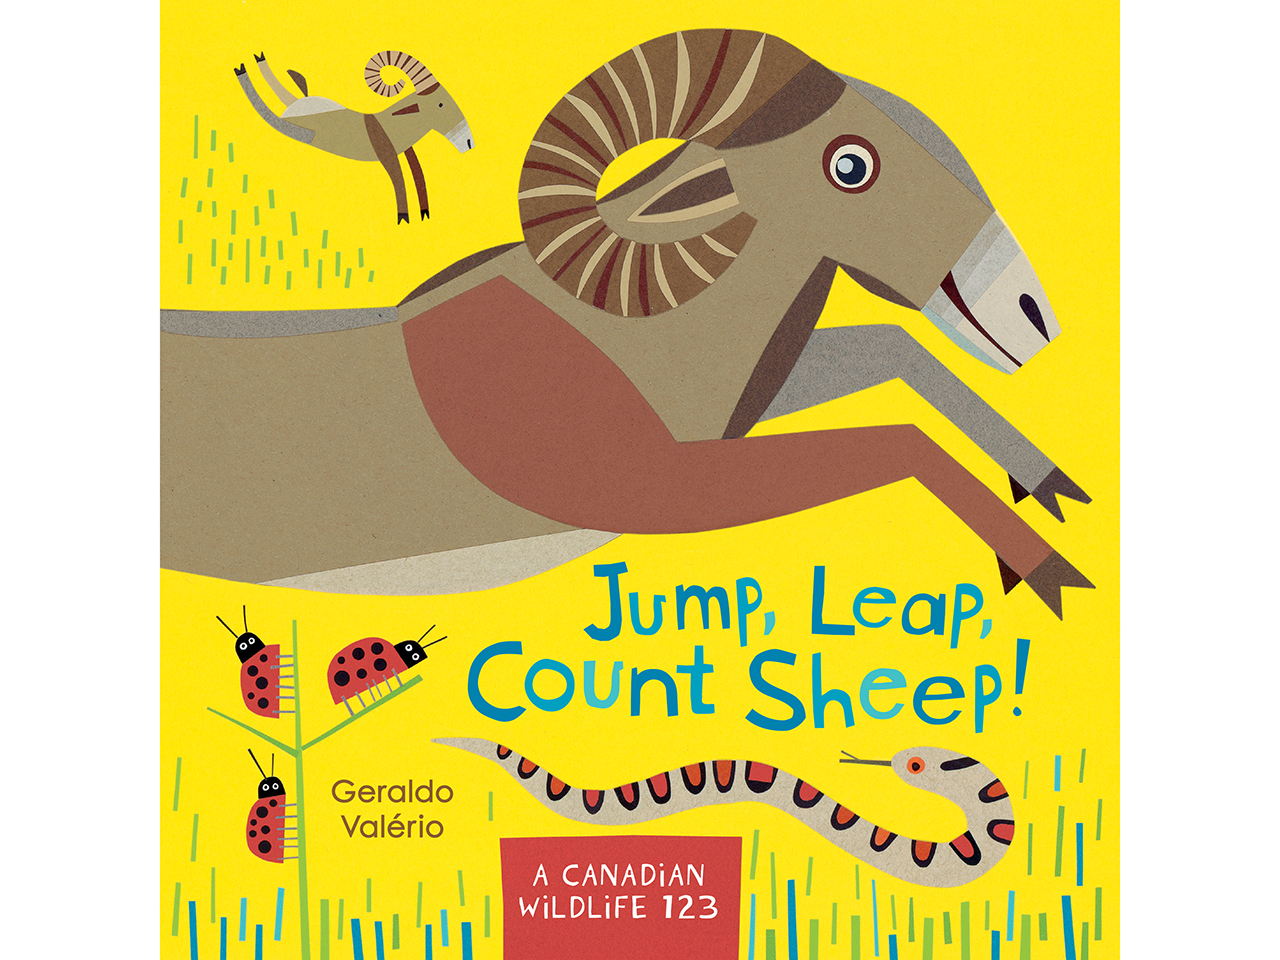 Jump, Leap, Count Sheep! book cover